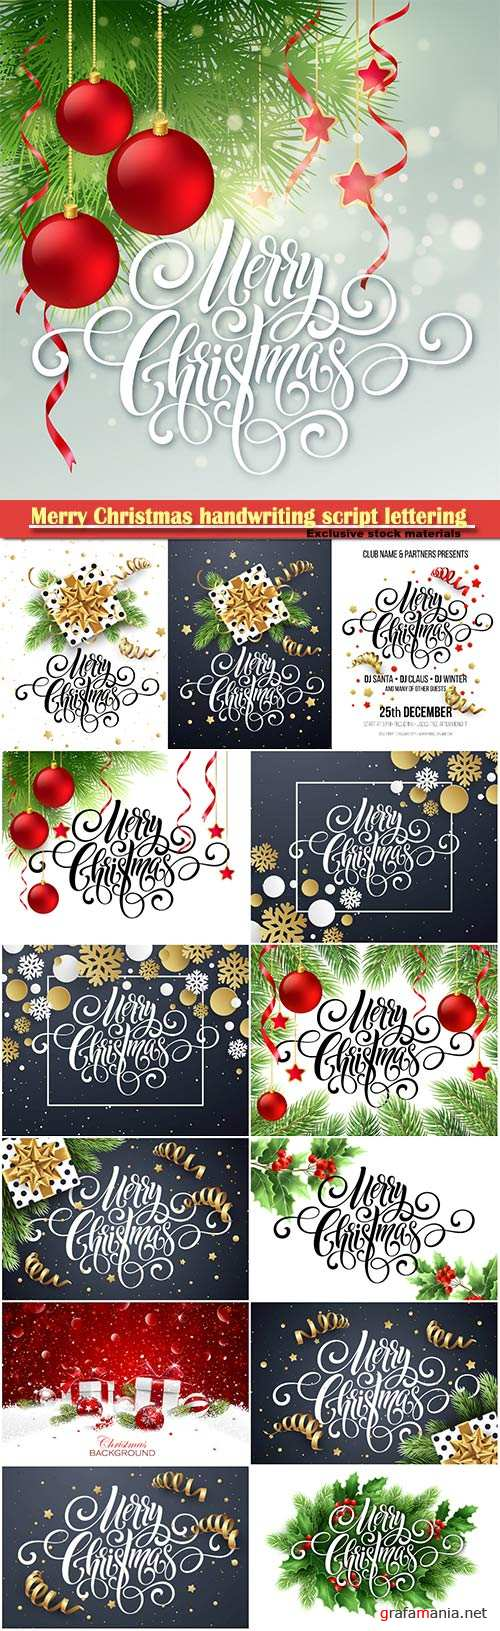 Merry Christmas handwriting script lettering, vector Christmas tree and decorations